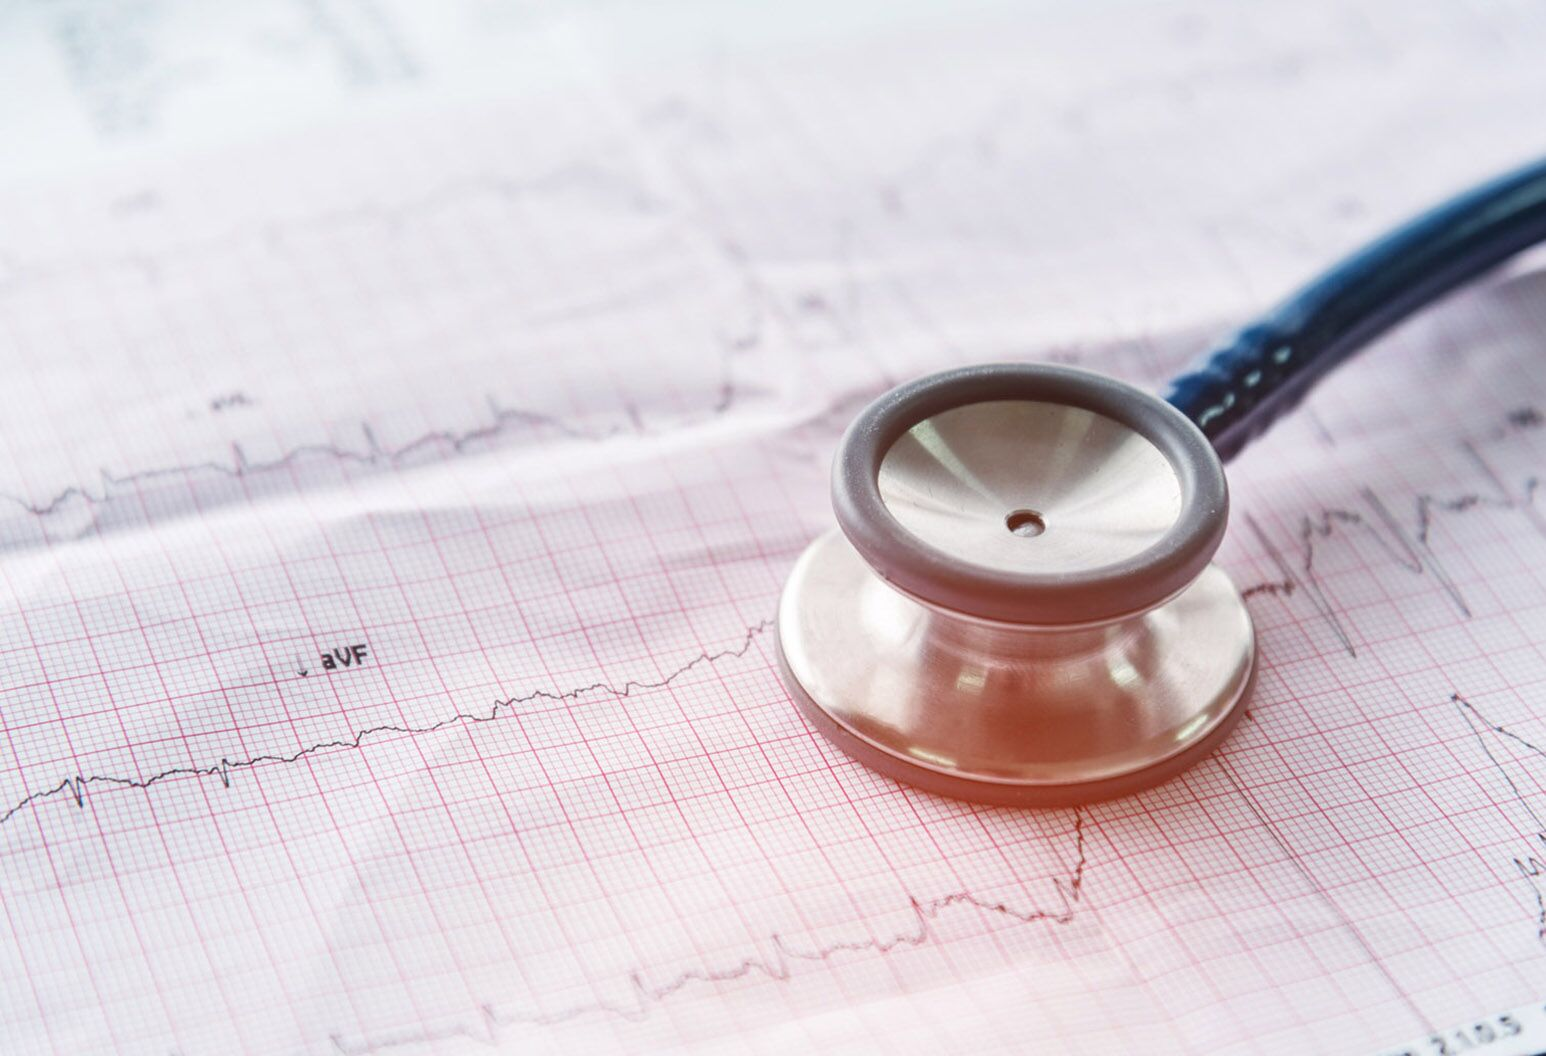 The Electrocardiogram with stethoscope on the EKG paper